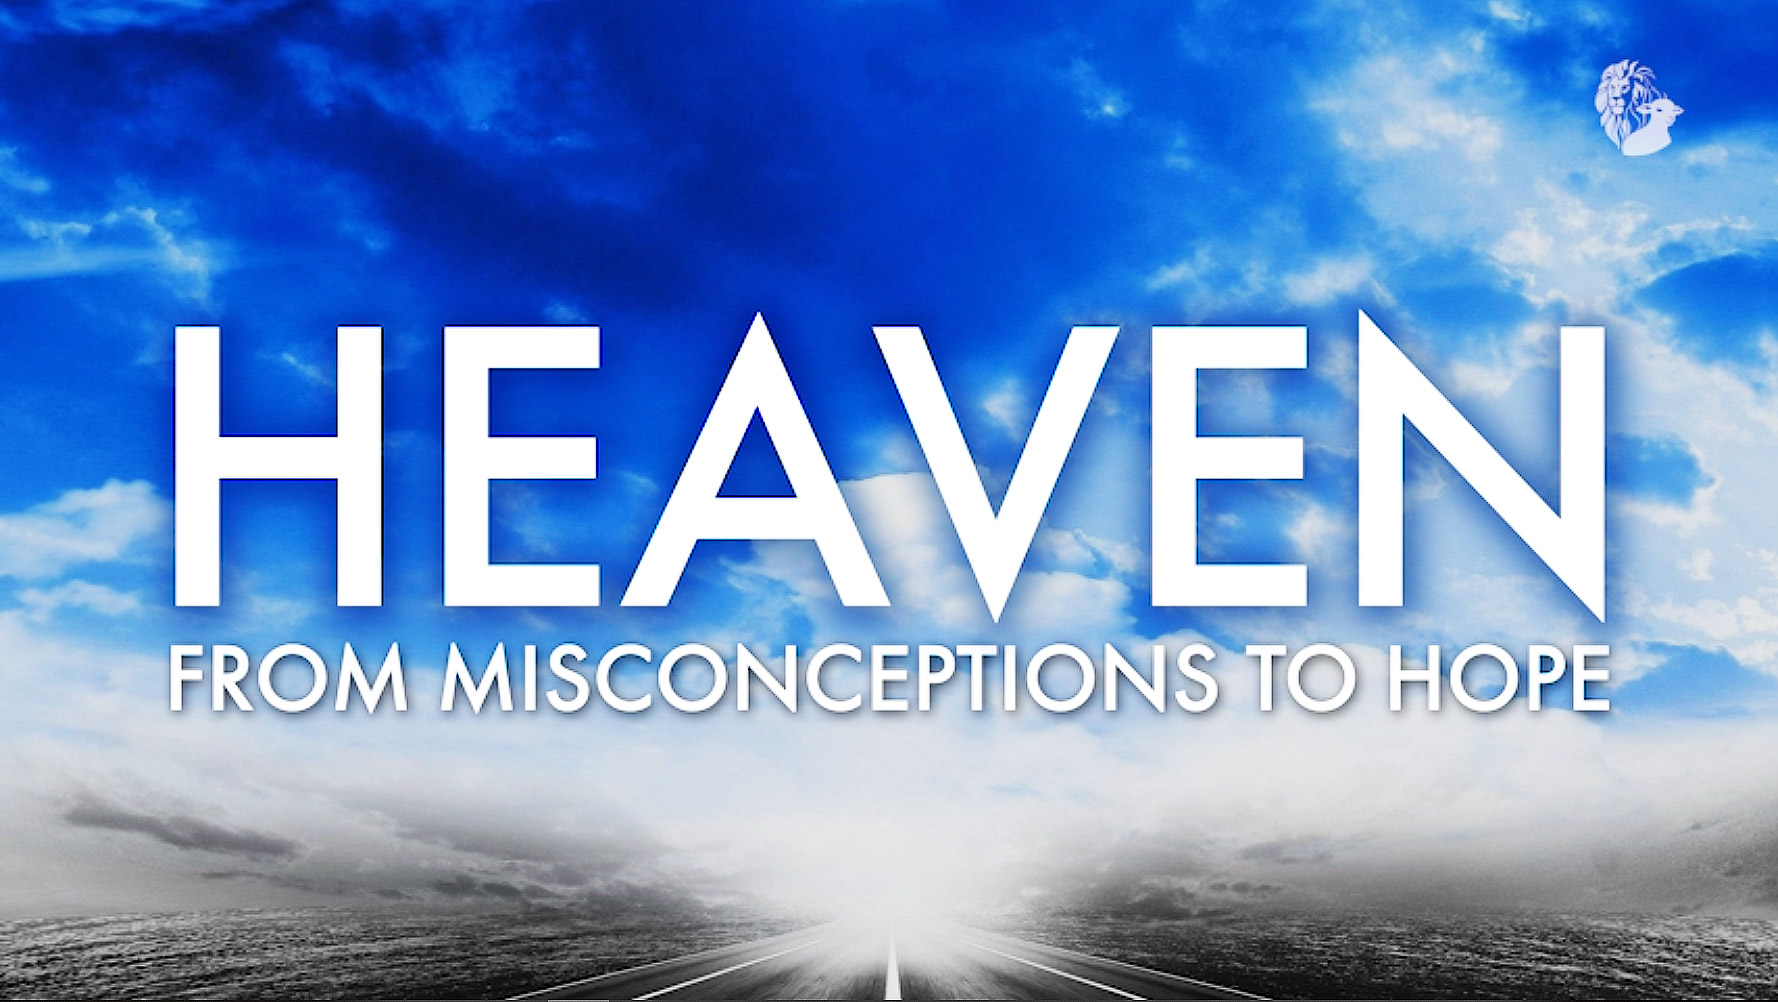 Heaven: From Misconceptions to Hope